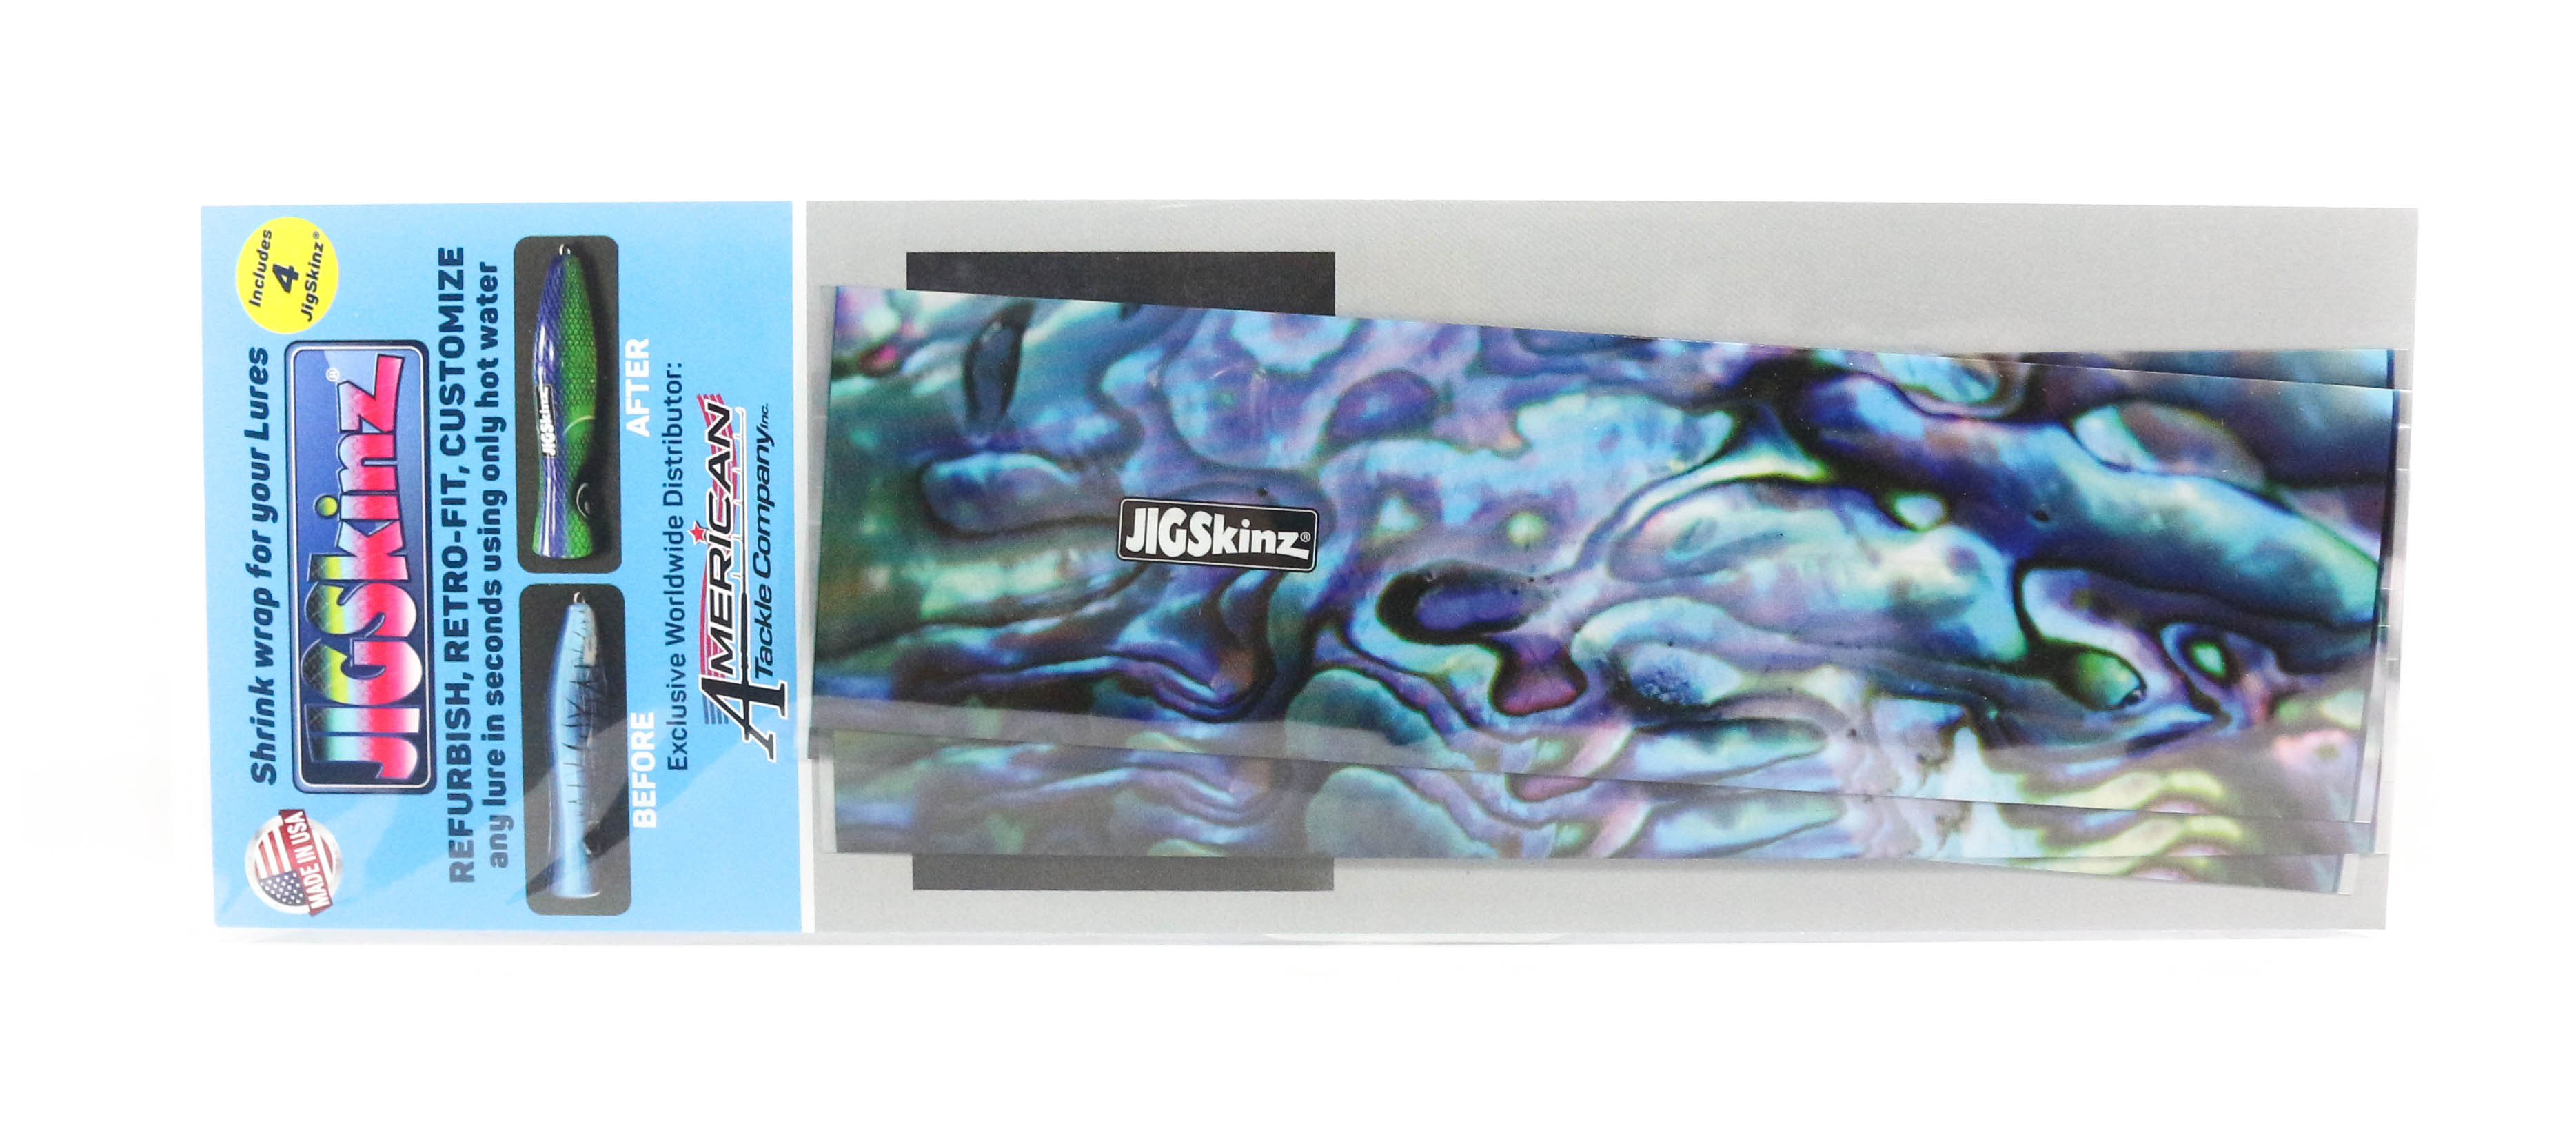 Jigskinz JZABB-L4 Abalone Blue 200 x 110mm x 4 pieces Large (3206)